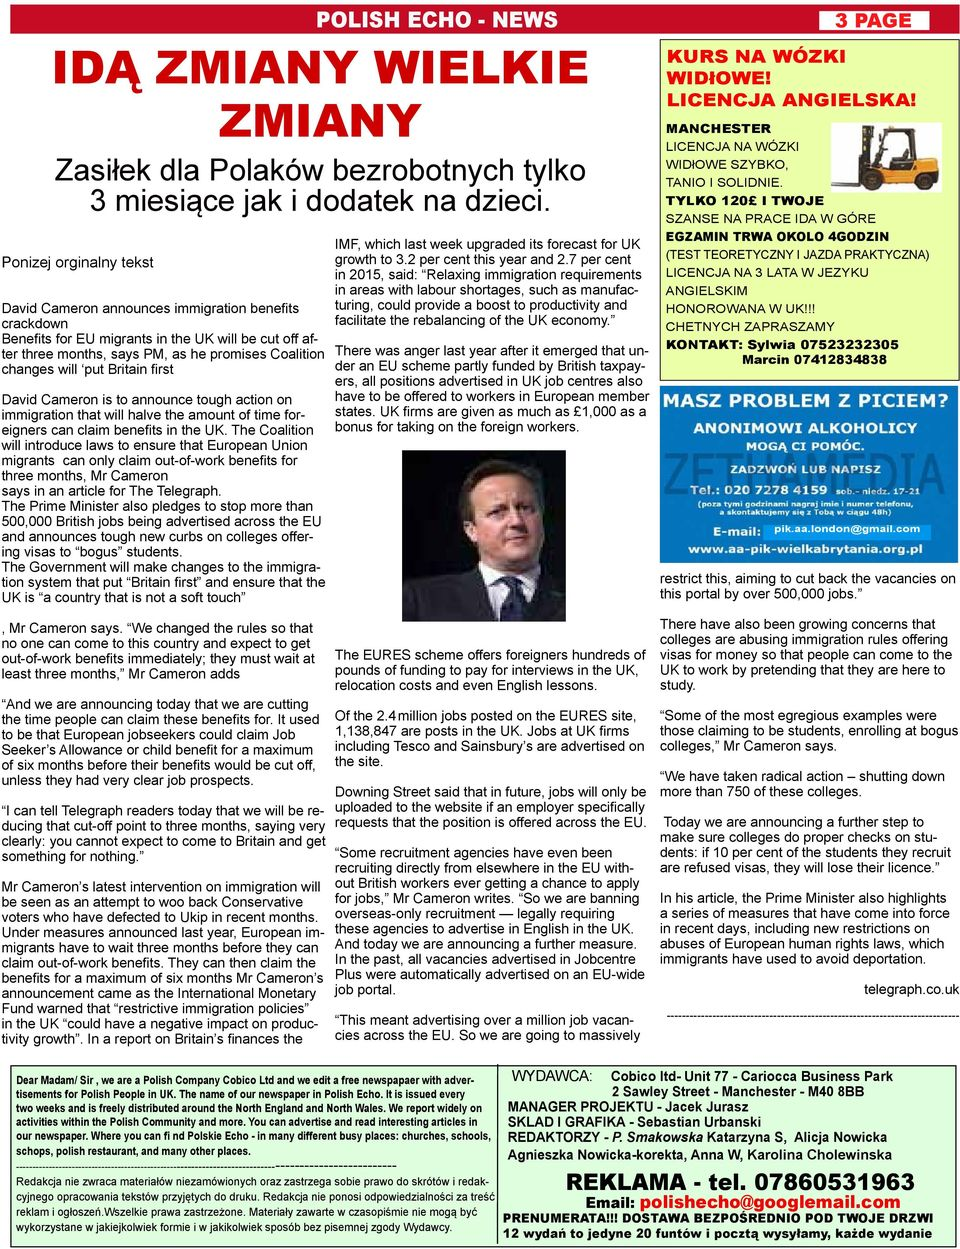 You can advertise and read interesting articles in our newspaper. Where you can fi nd Polskie Echo - in many different busy places: churches, schools, schops, polish restaurant, and many other places.